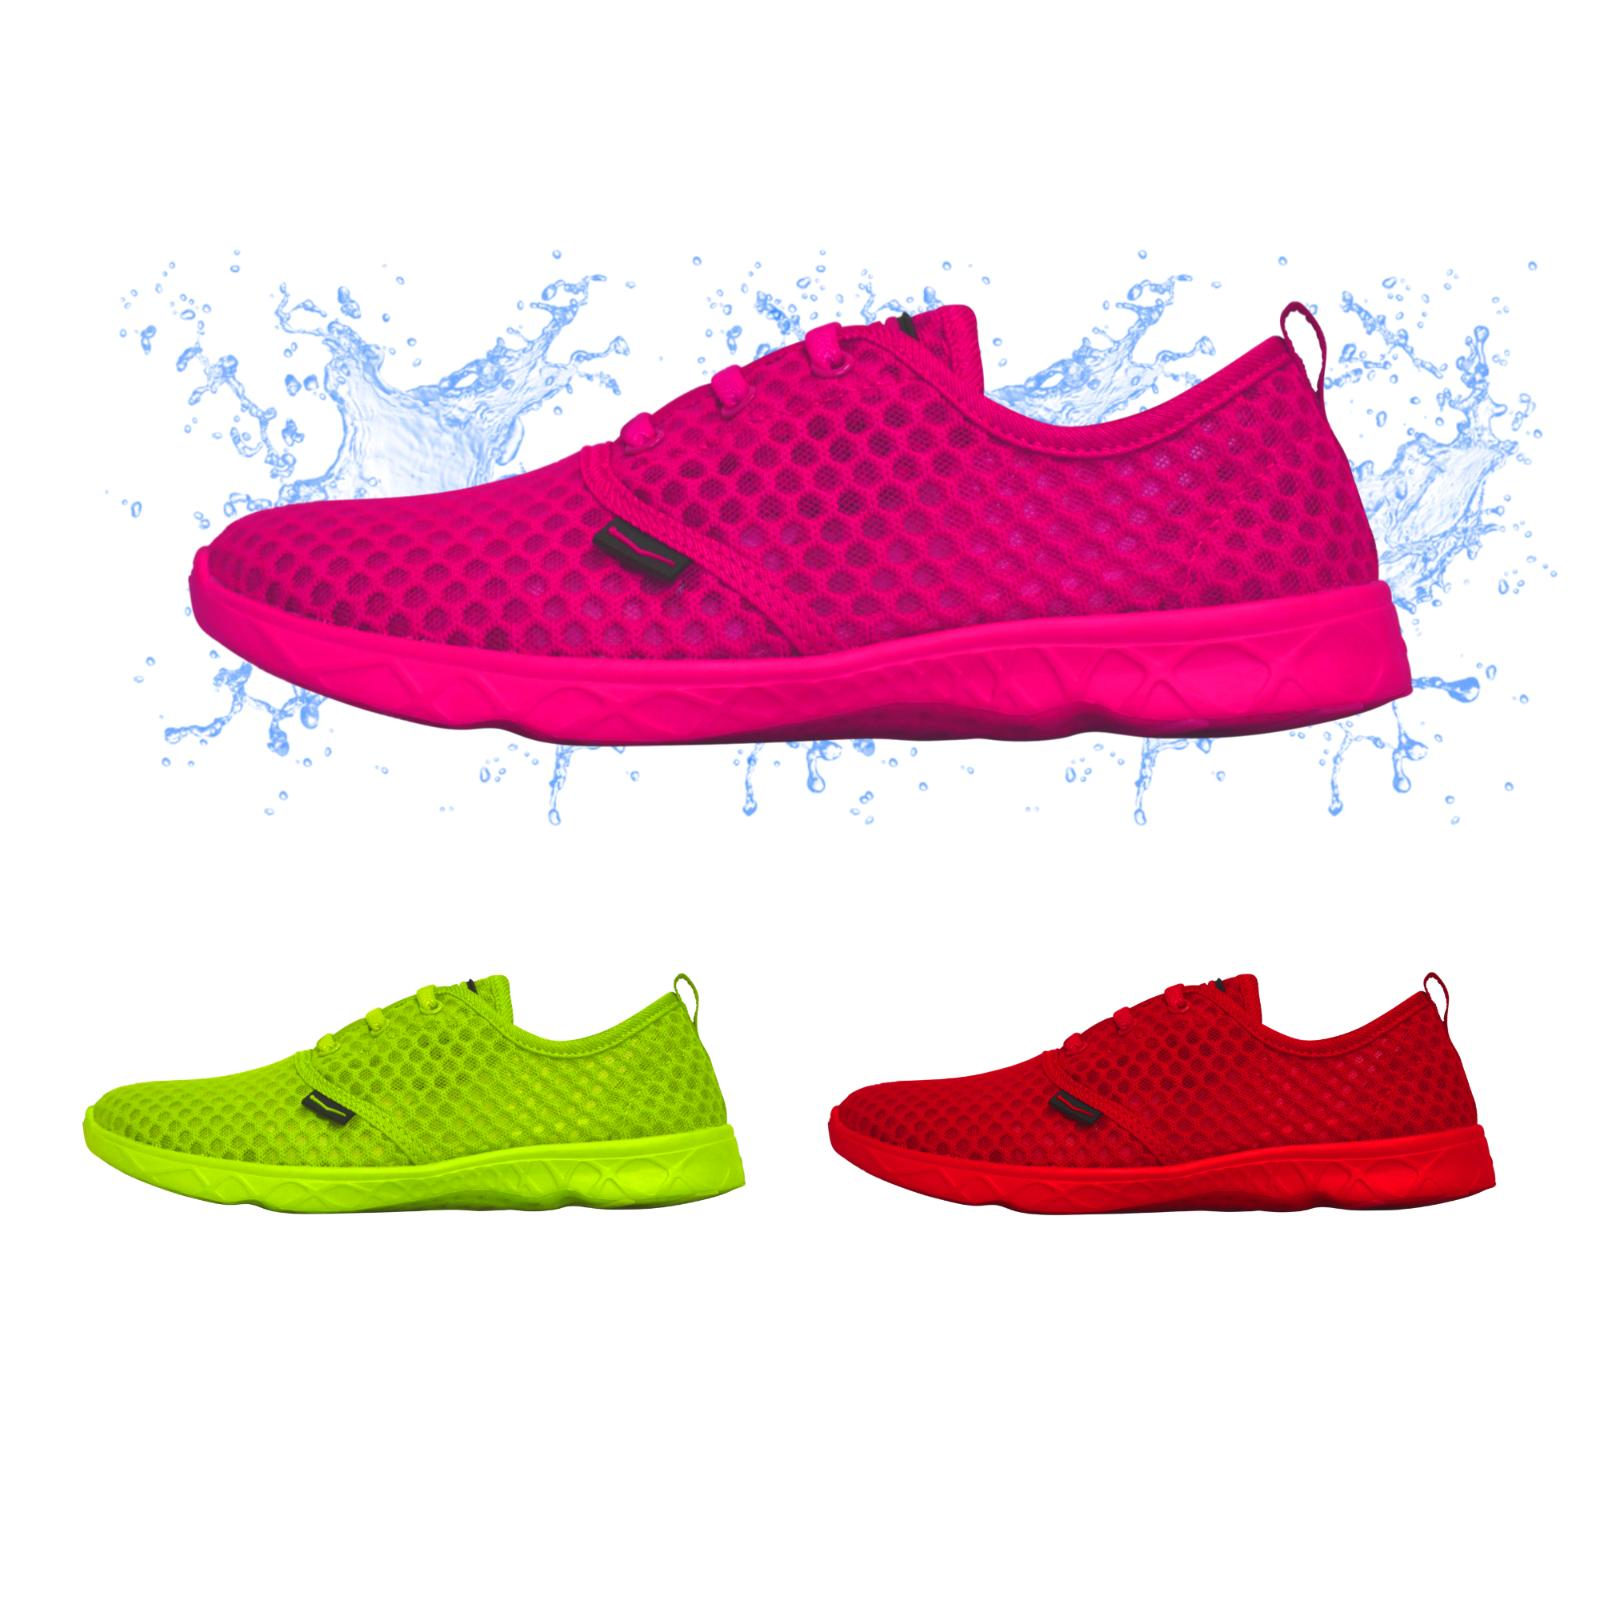 Wave for Water Shoes With Style